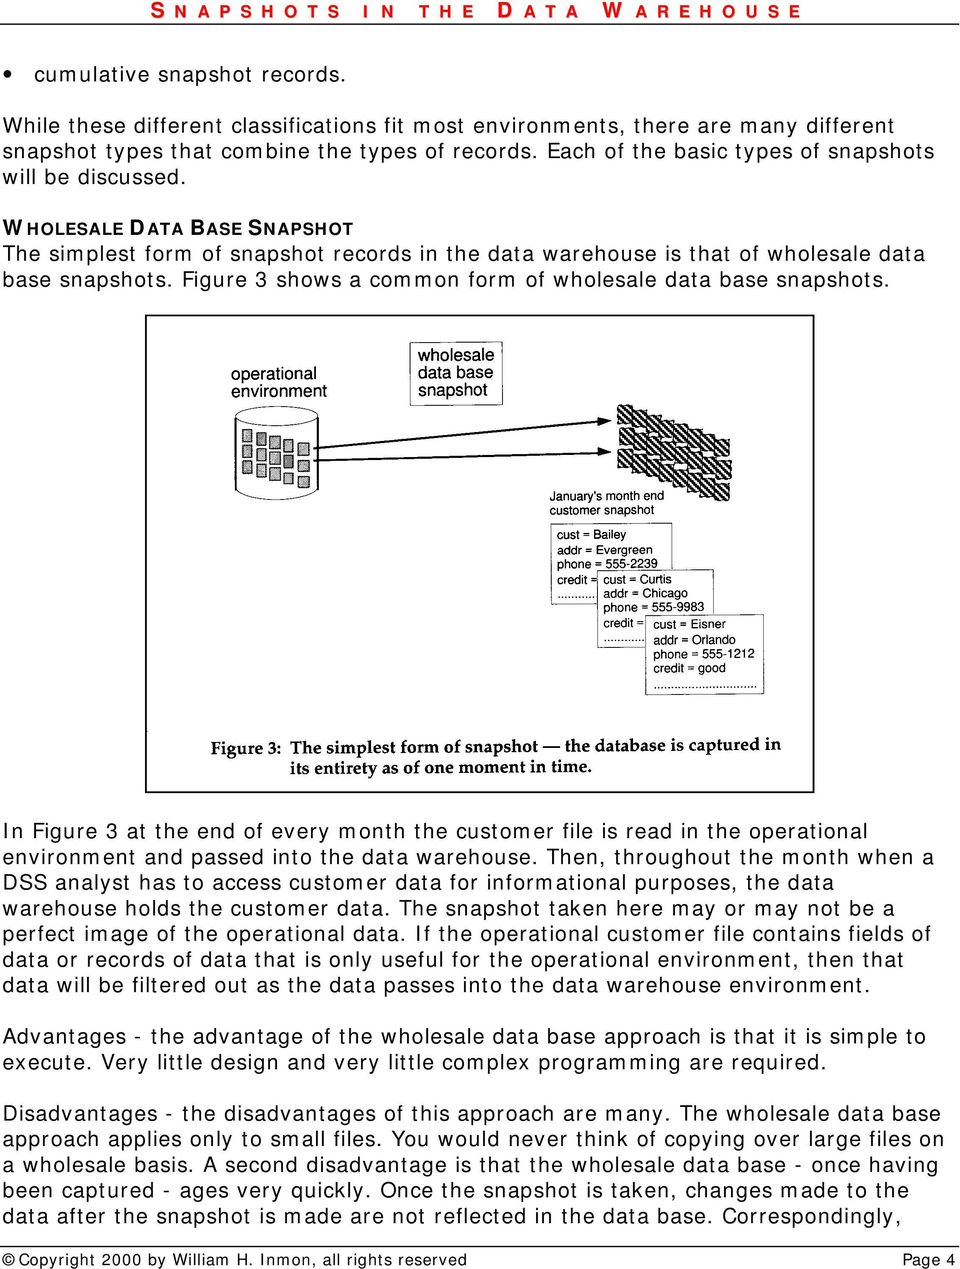 Figure 3 shows a common form of wholesale data base snapshots. In Figure 3 at the end of every month the customer file is read in the operational environment and passed into the data warehouse.